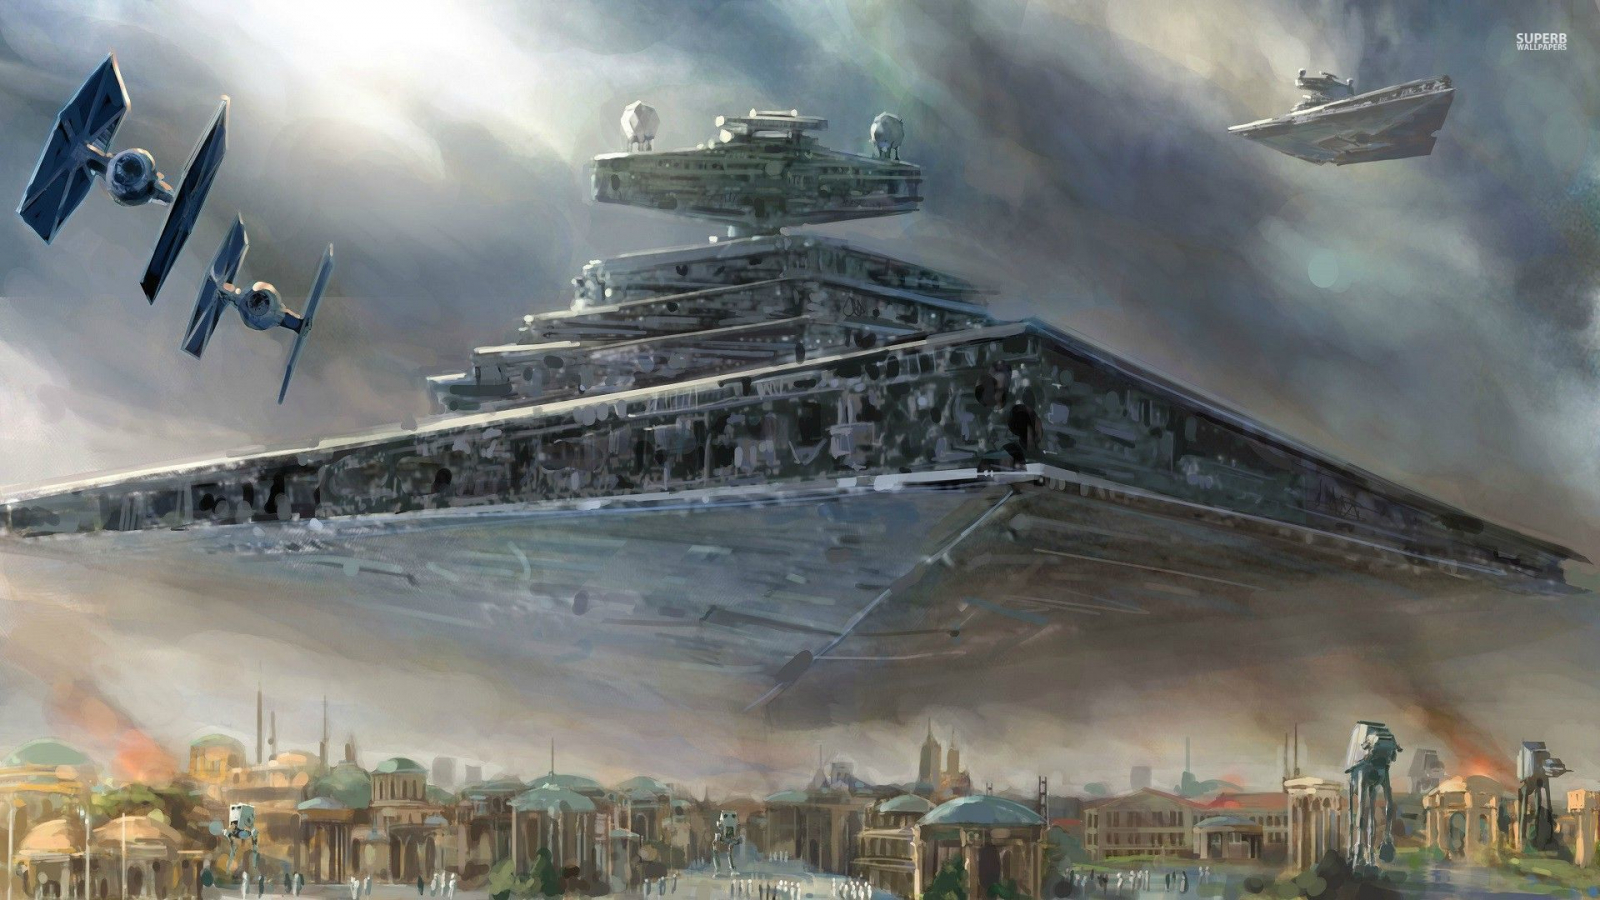 Free Download High Resolution Star Wars Ships Widescreen Hd Wallpaper 1920x1080 For Your Desktop Mobile Tablet Explore 50 Star Wars Ships Wallpaper Star Trek Ships Wallpaper Free Star Wars